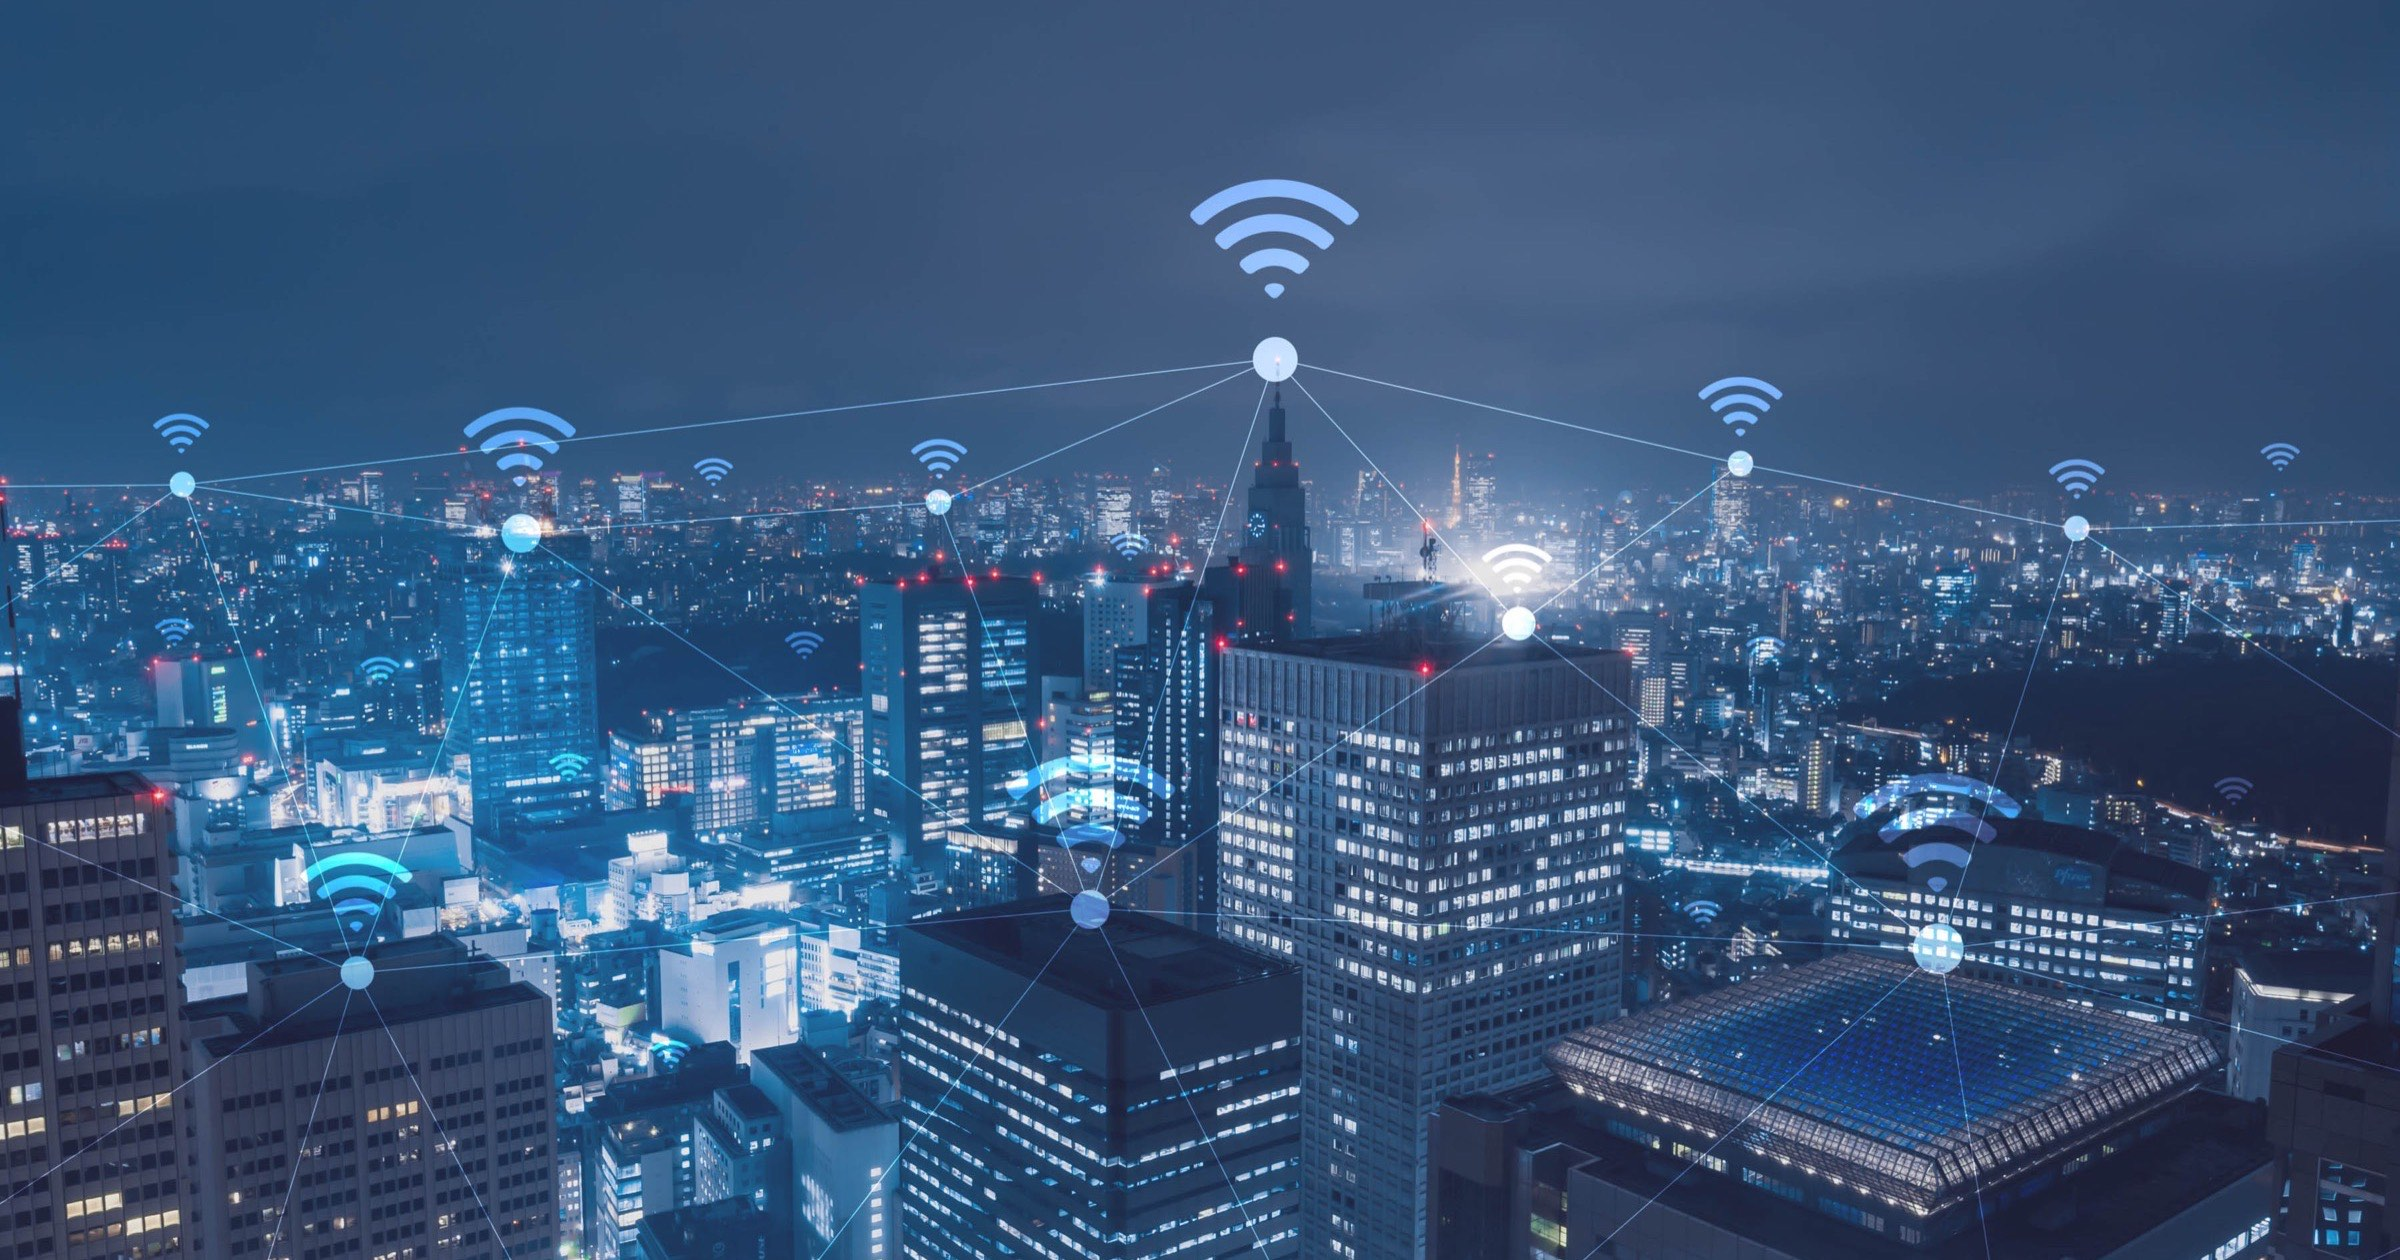 Wi-Fi connections in a city